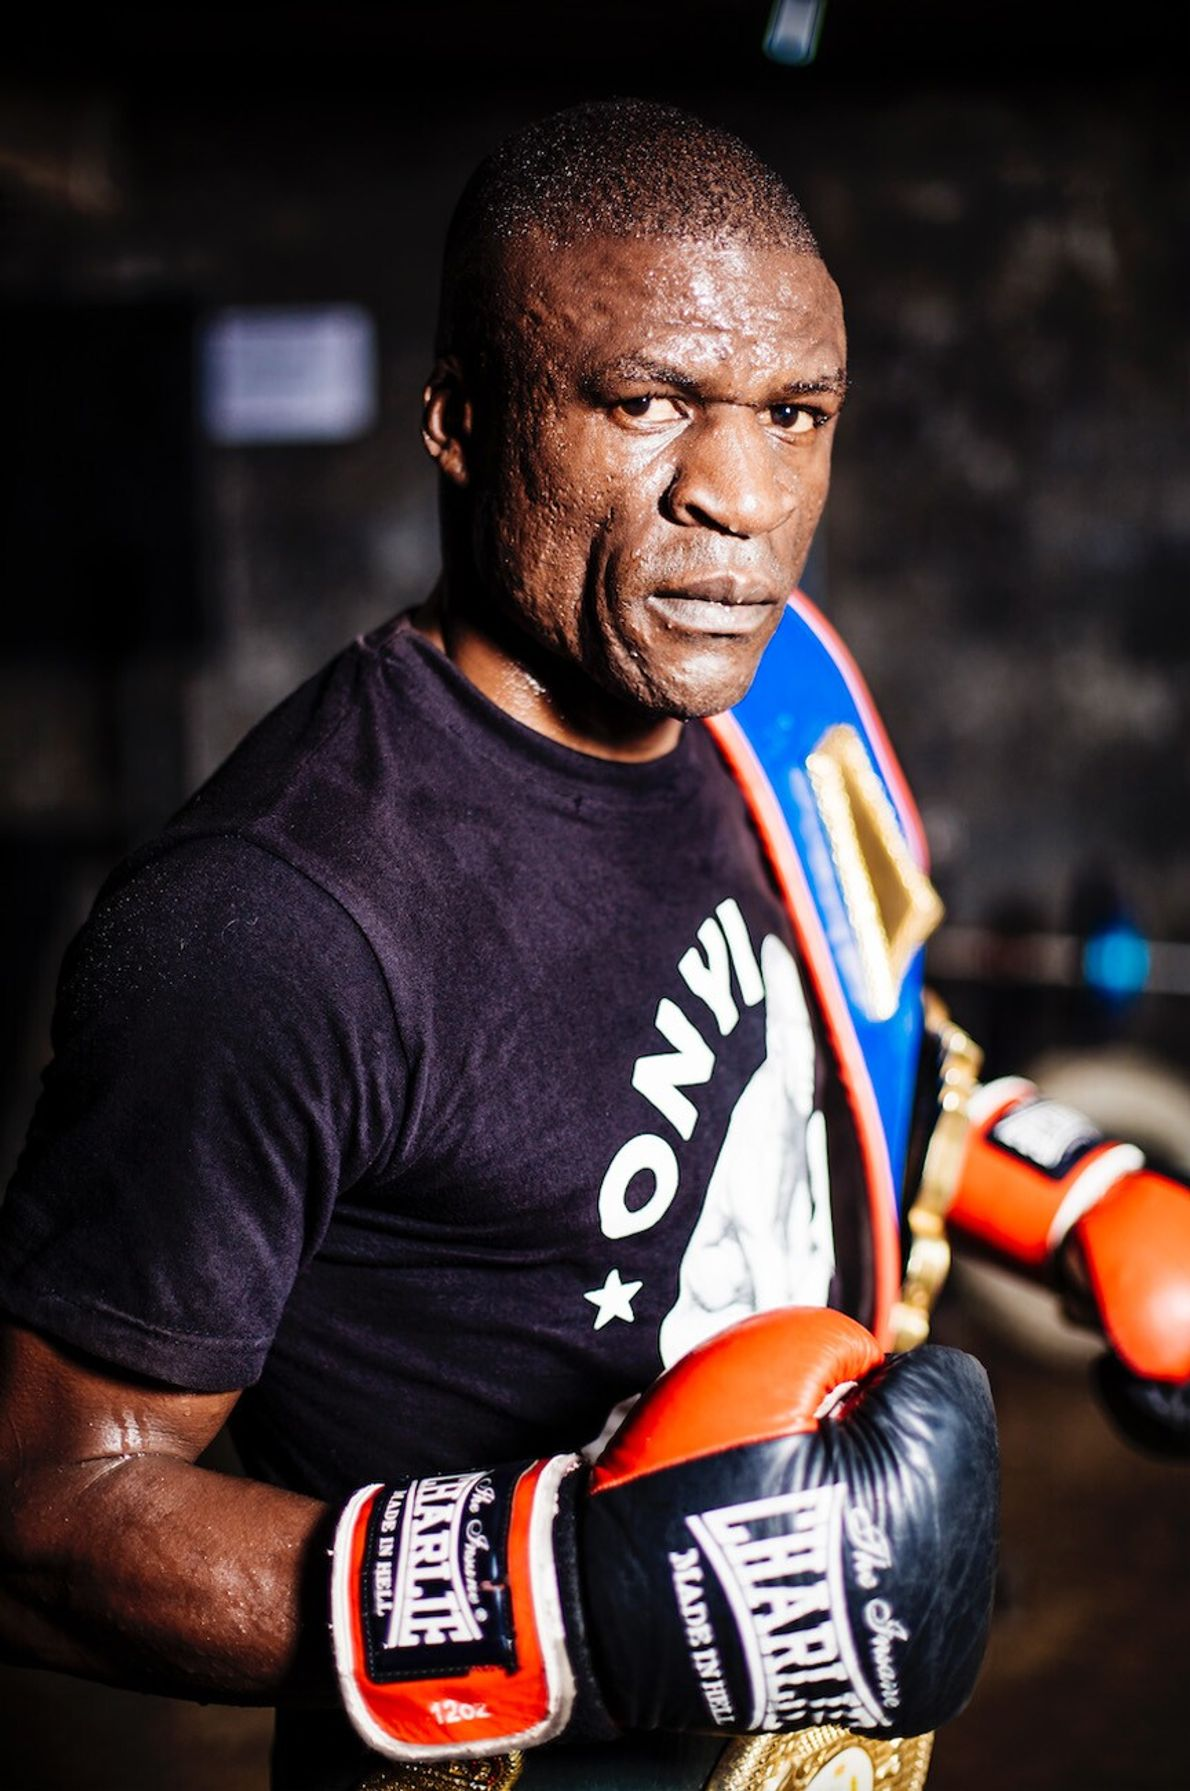 Onyango first got interested in boxing when he saw Moses Kinyua, also from Kariobangi, win a ...